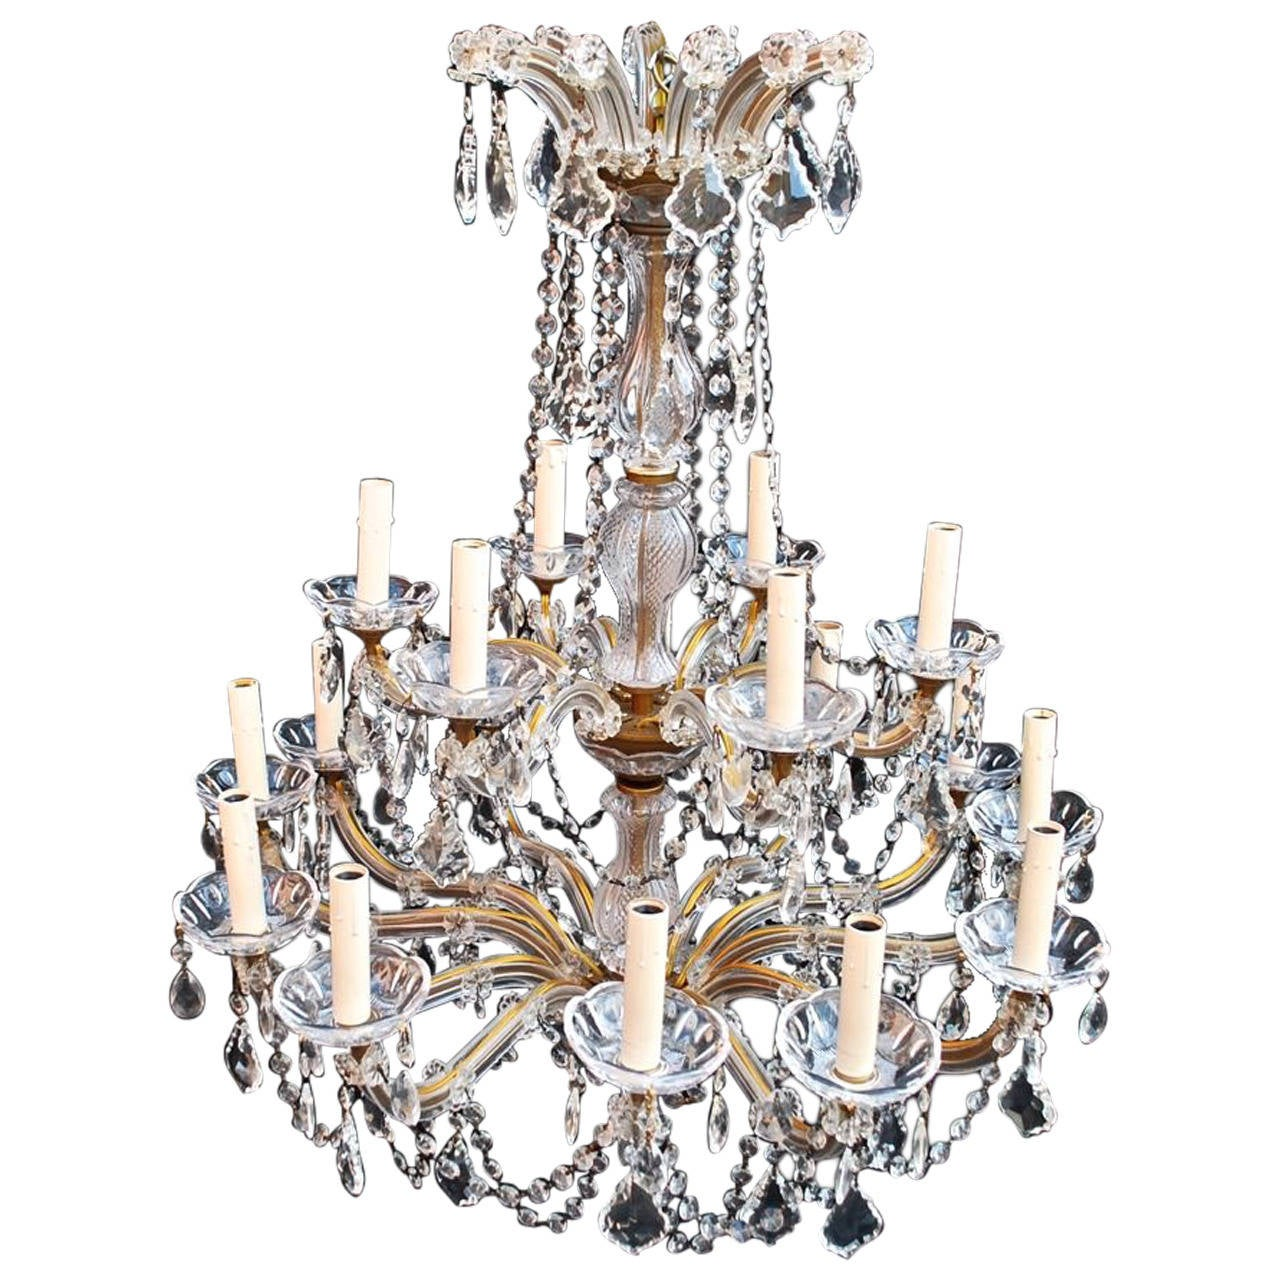 Large crystal chandelier maria theresa style for sale at 1stdibs large crystal chandelier maria theresa style 1 arubaitofo Choice Image